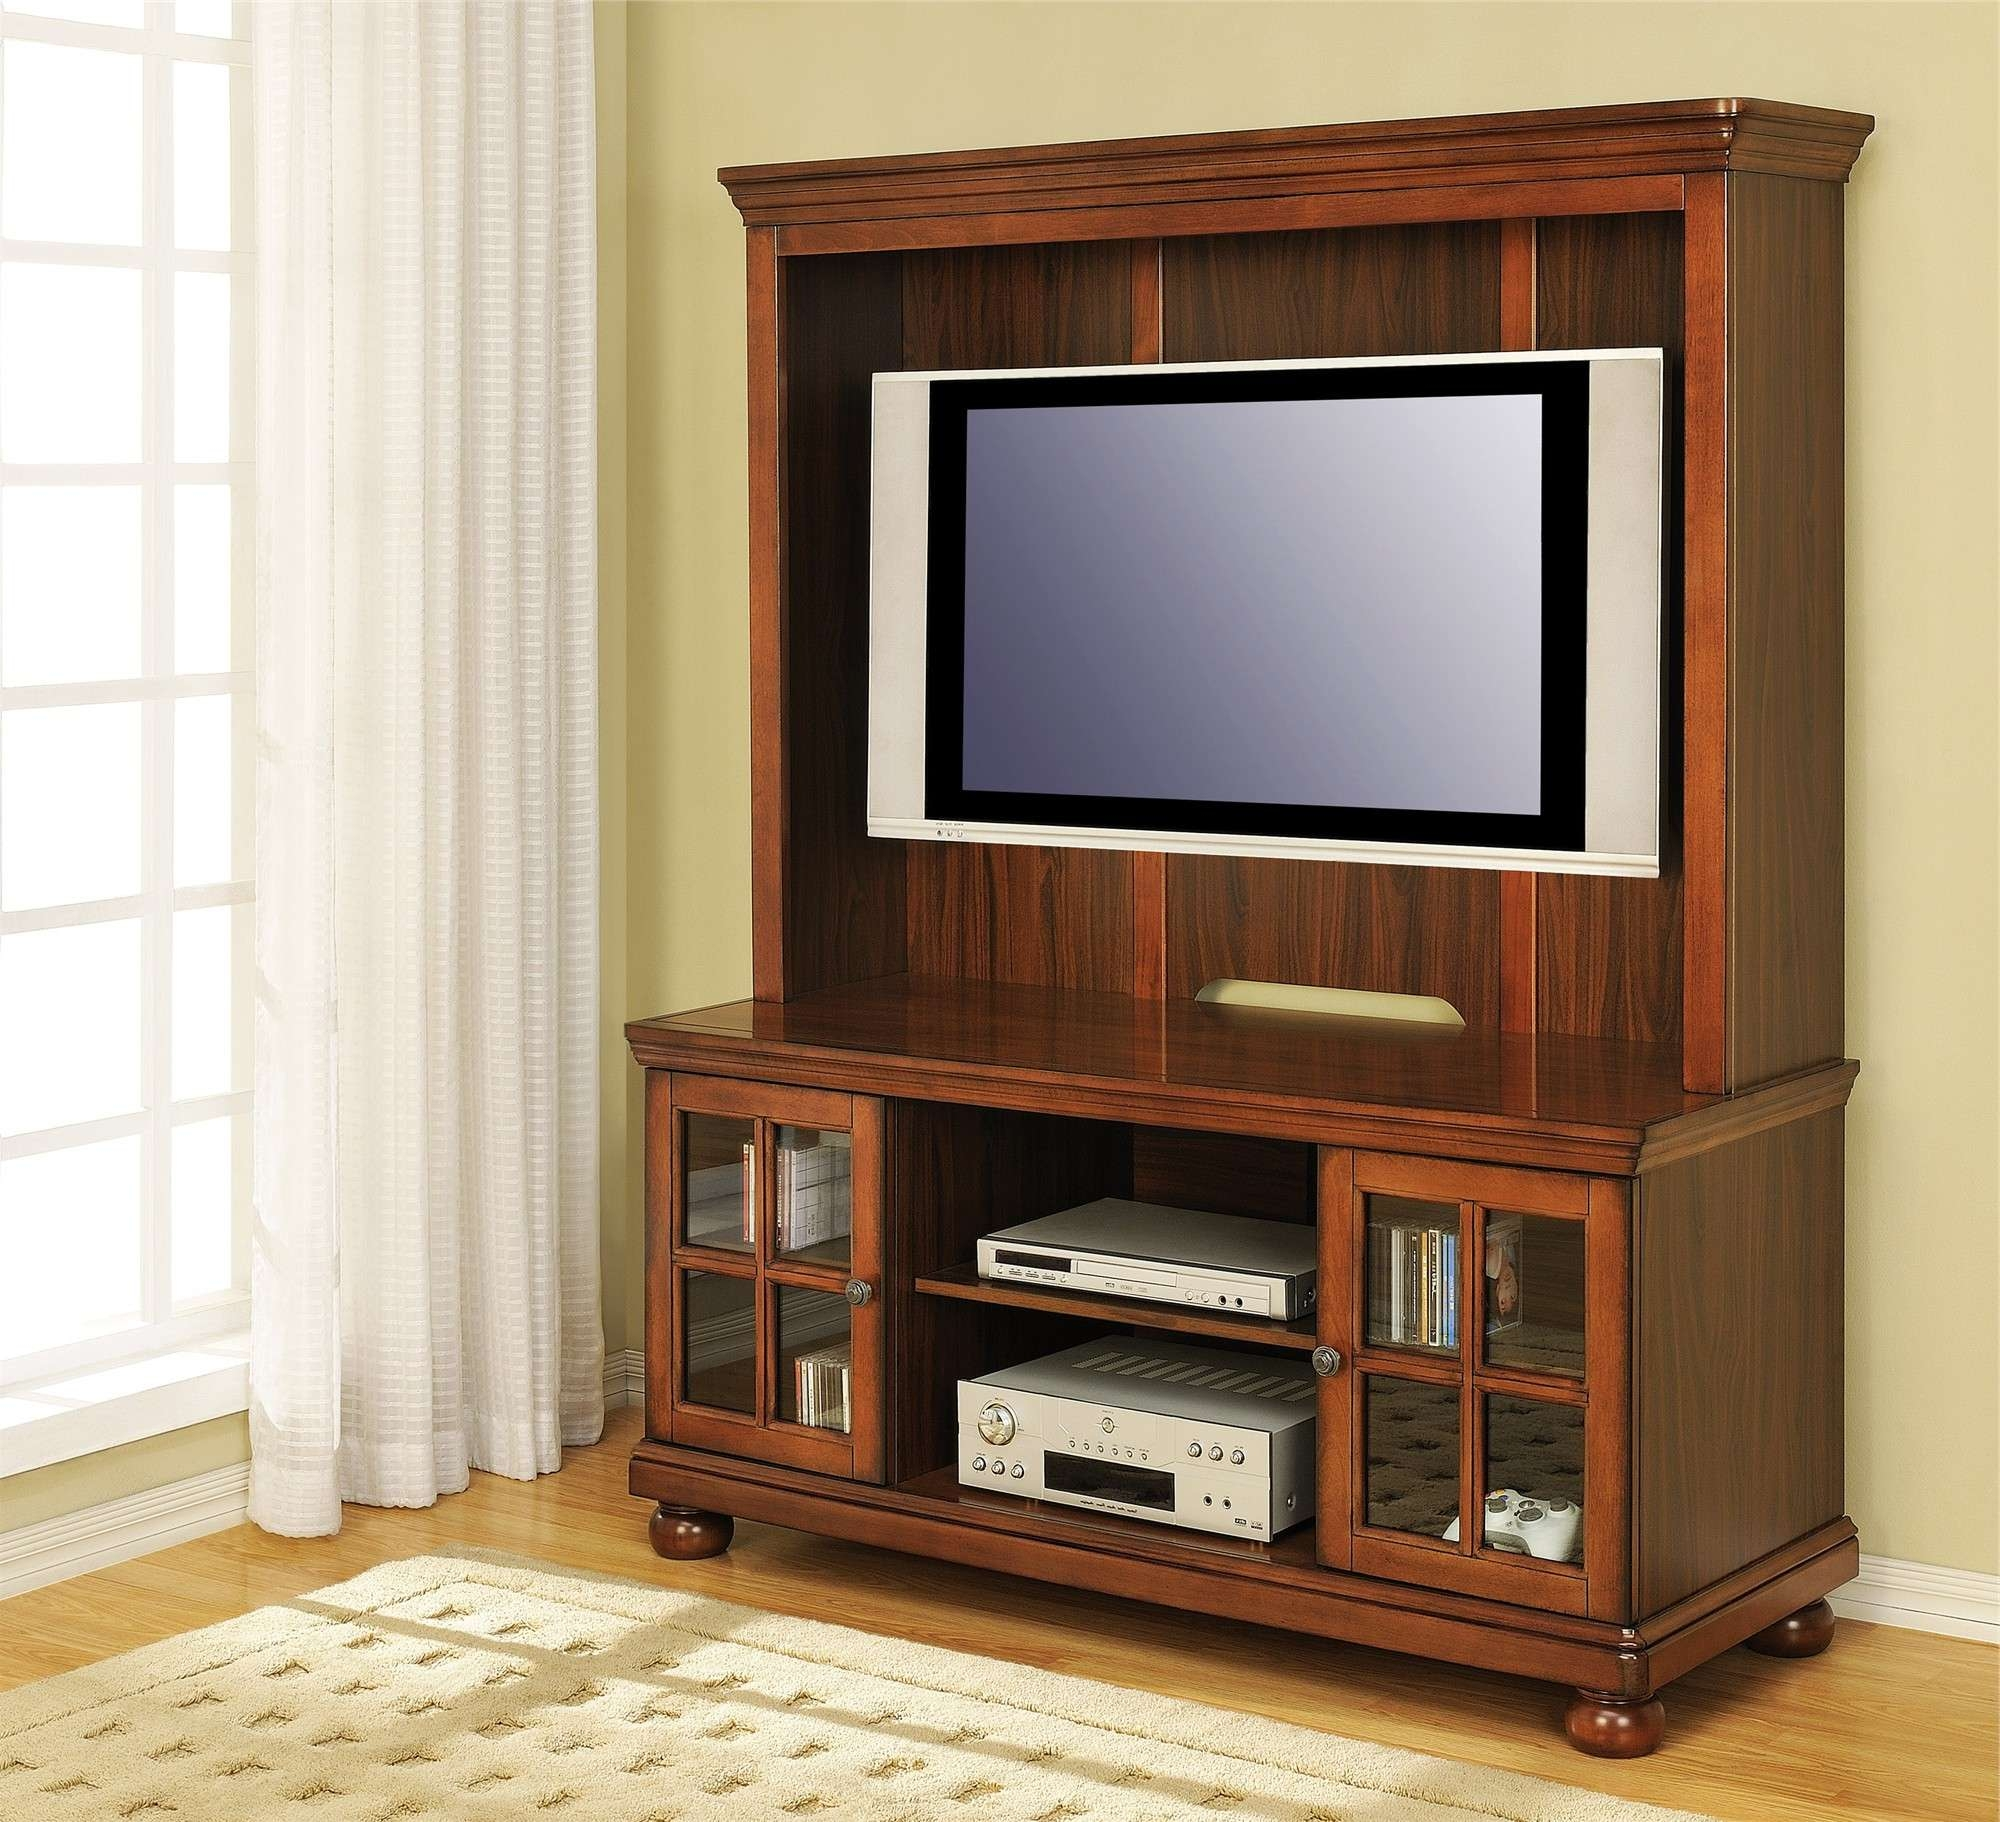 Modern Brown Oak Wood Media Cabinet With Mounted Tv Storage Regarding Corner Tv Cabinets For Flat Screens With Doors (View 4 of 20)